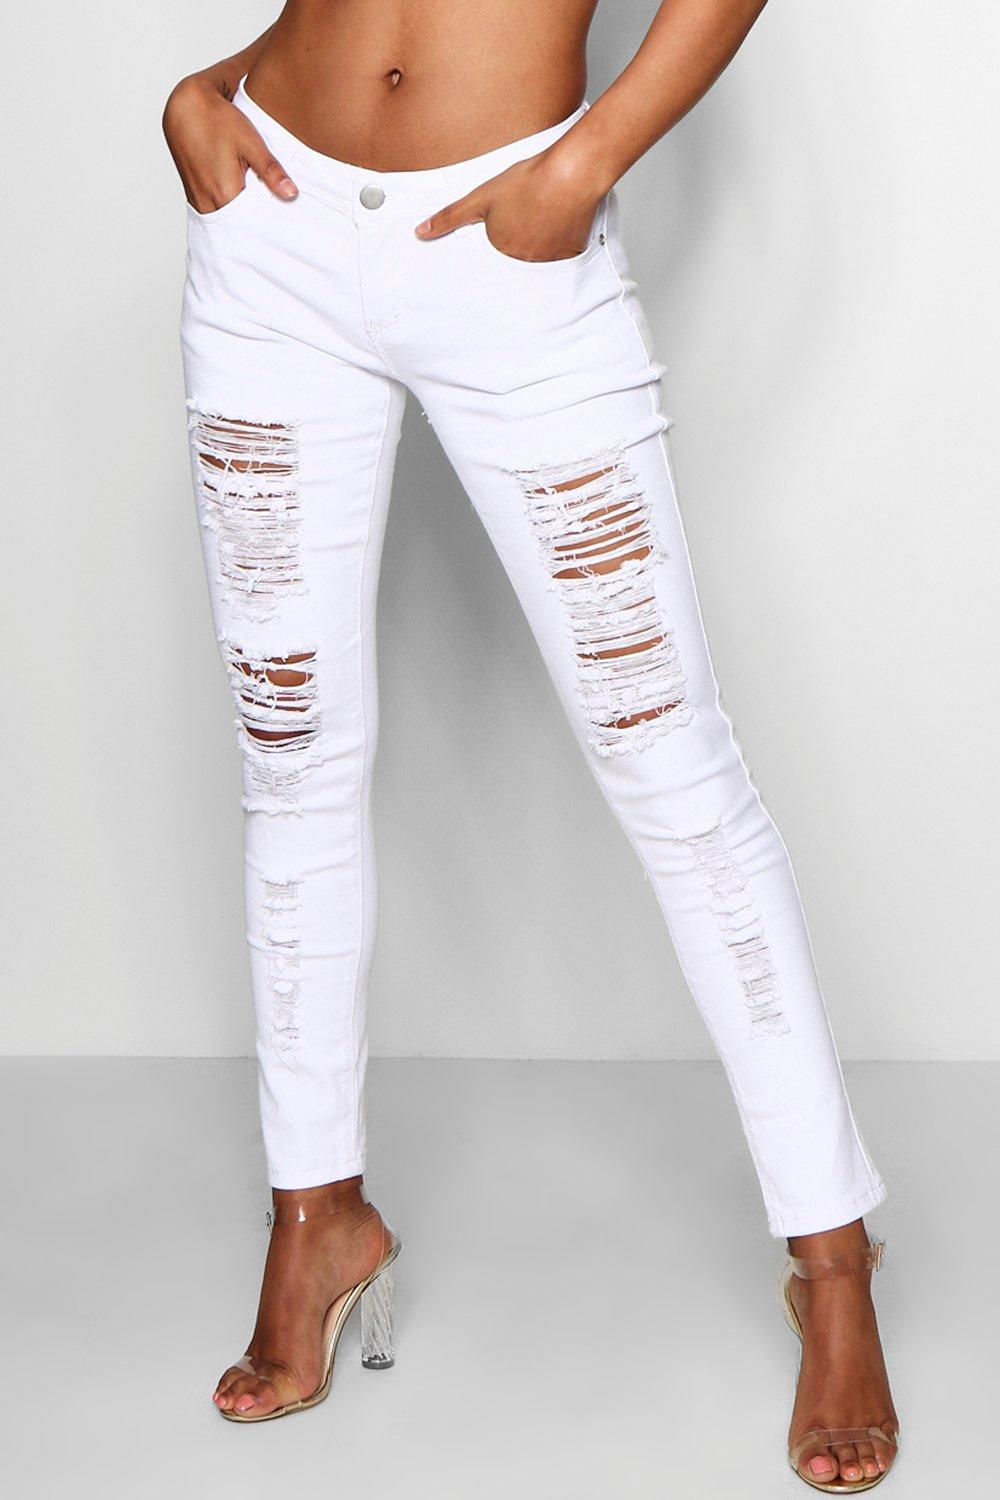 A lady wearing ripped white jeans